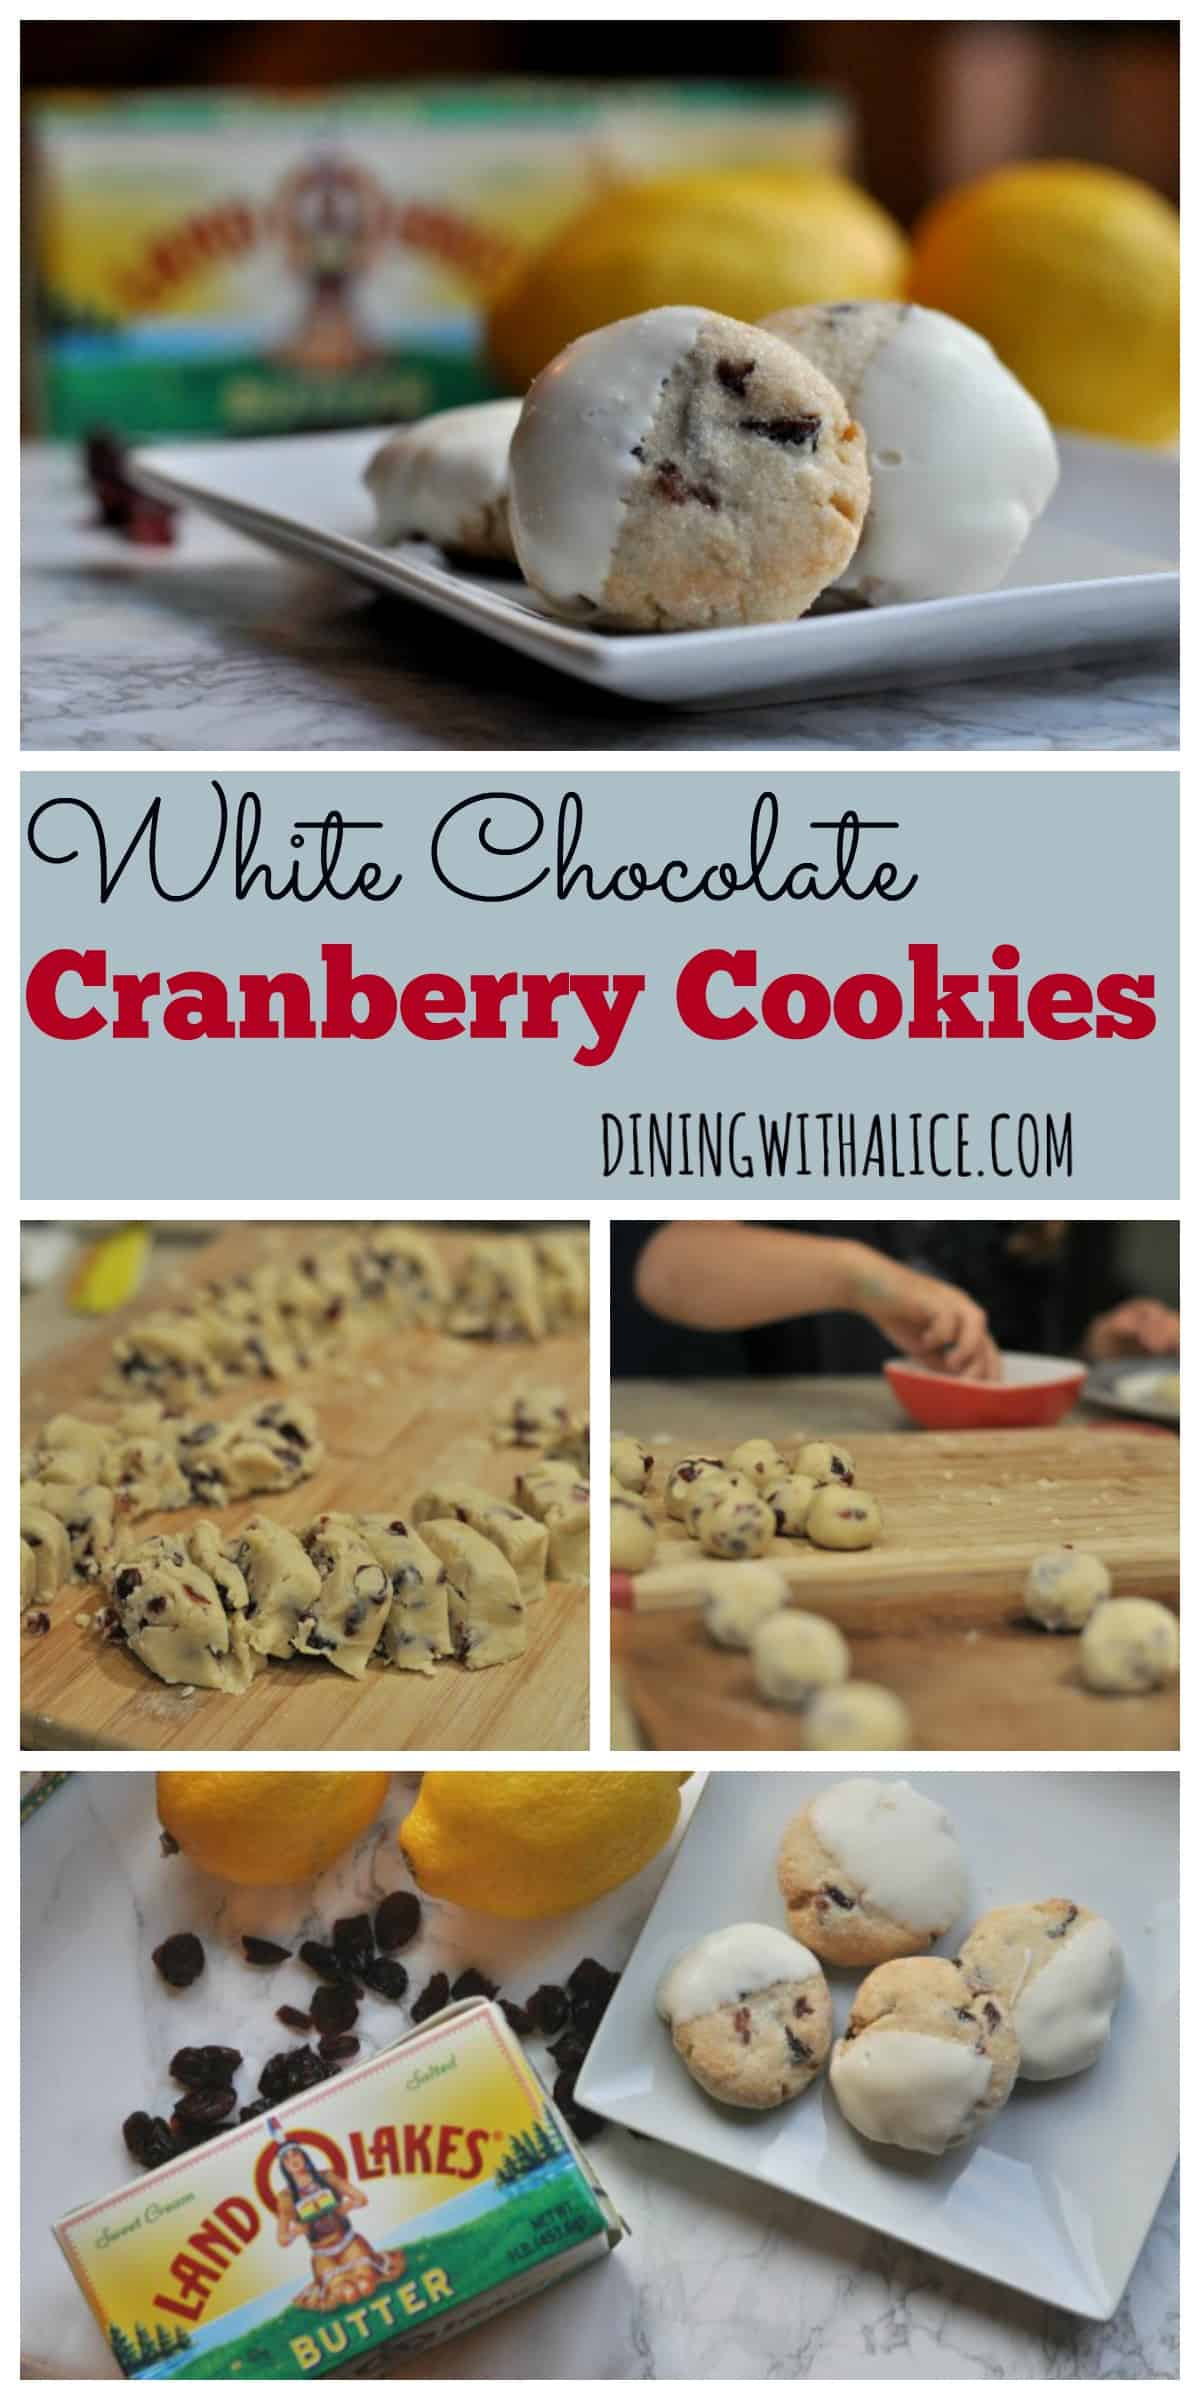 White Chocolate Cranberry Cookies - Dining with Alice